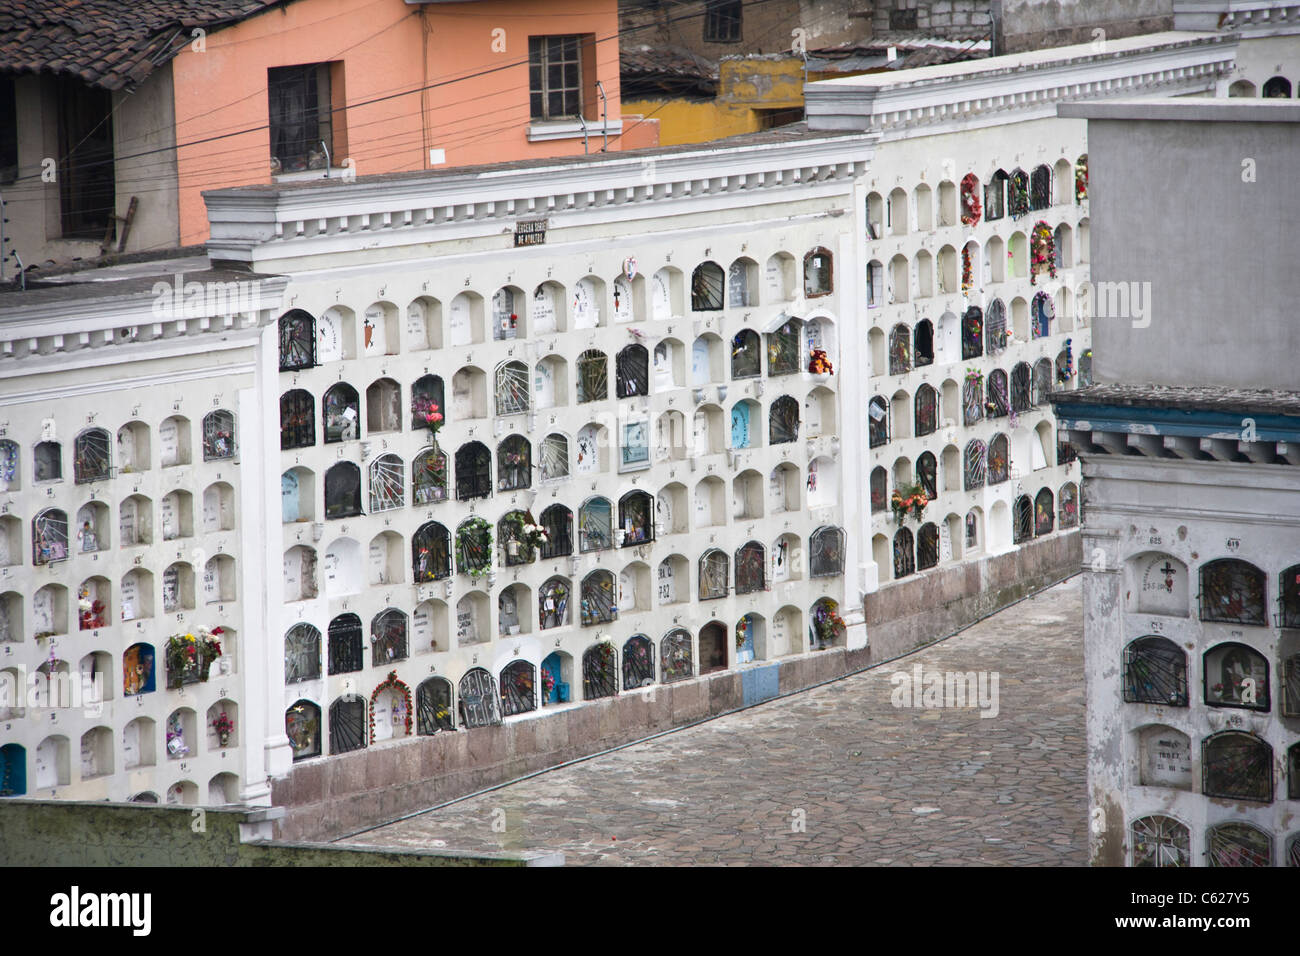 Cemetery vaults in Quito, Ecuador. Space is at a premium, so burial is in stacked vaults. - Stock Image